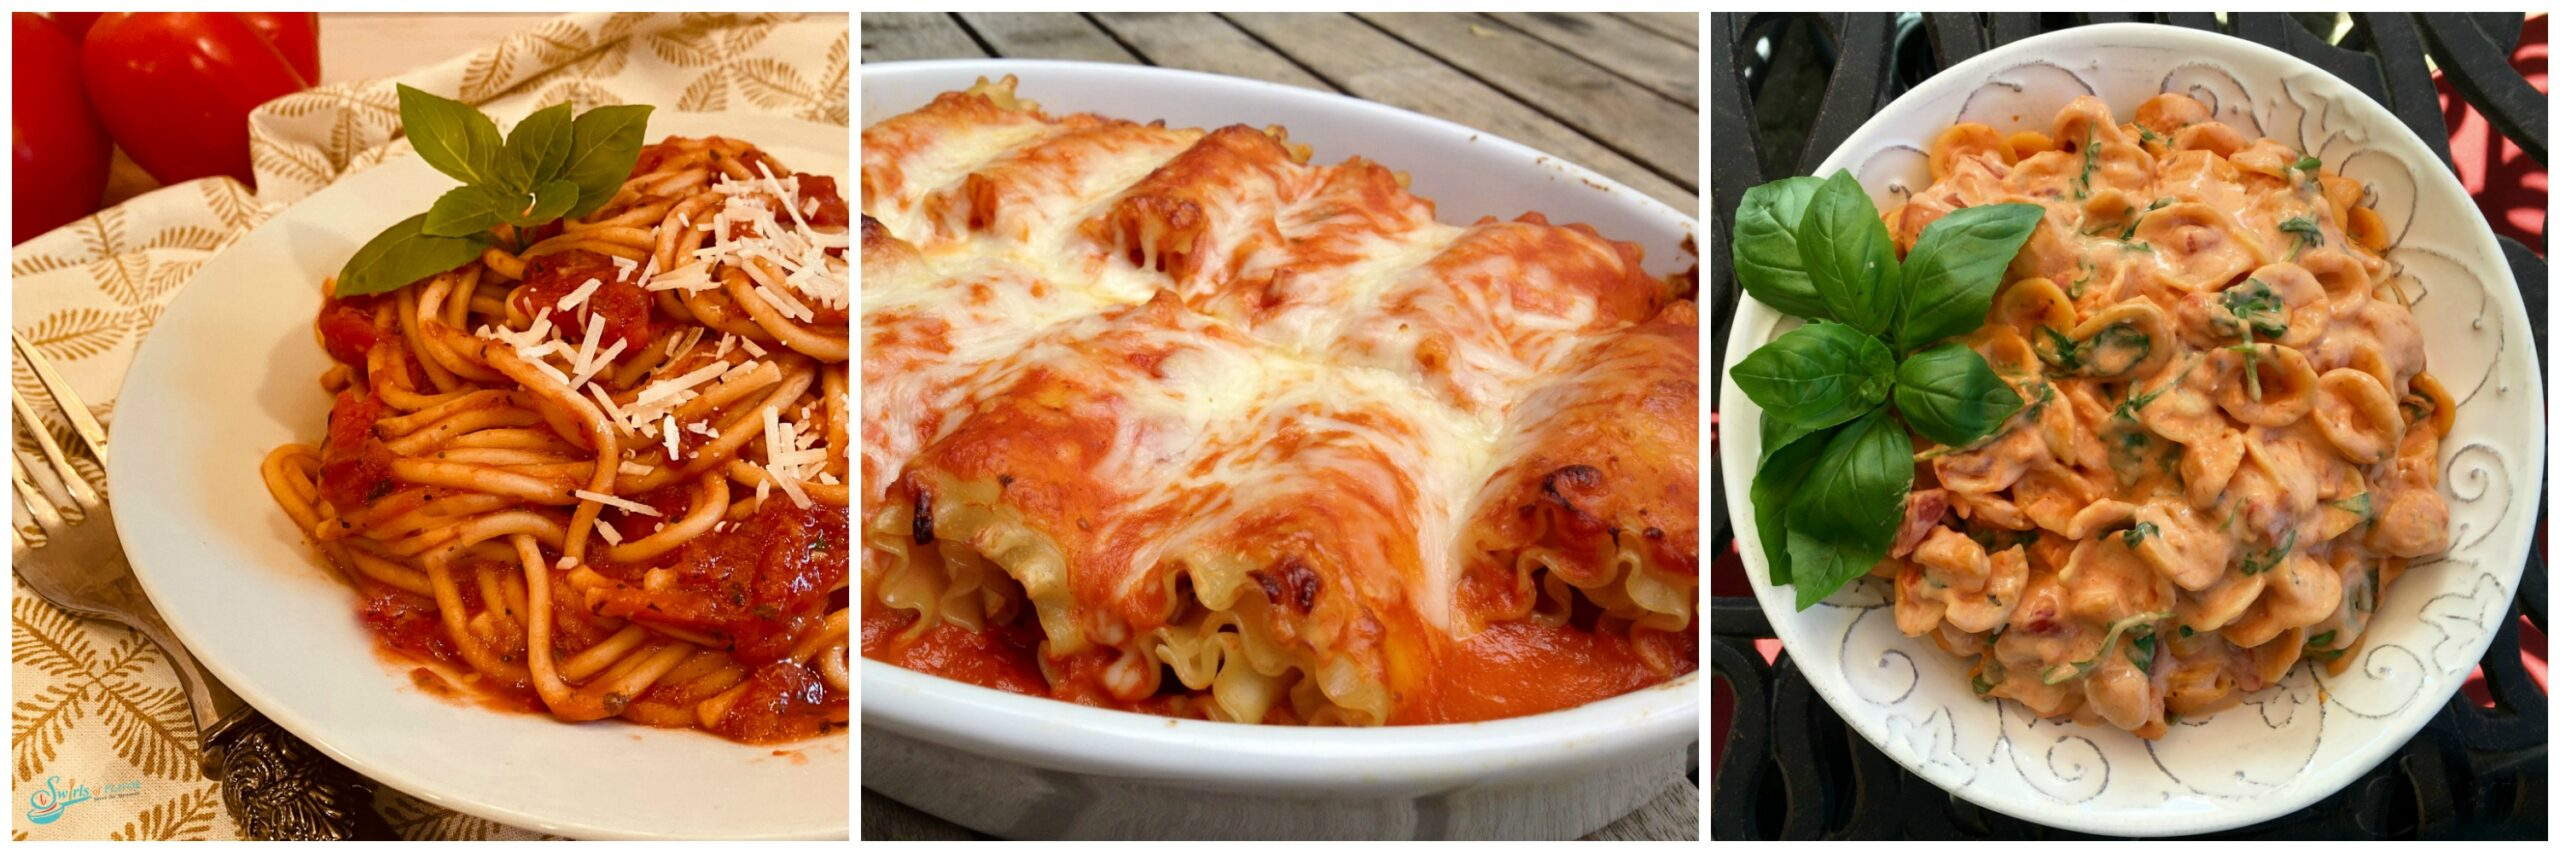 Bowl of spaghetti; Baking dish of lasagna roll ups; creamy tomato pasta in white bowl